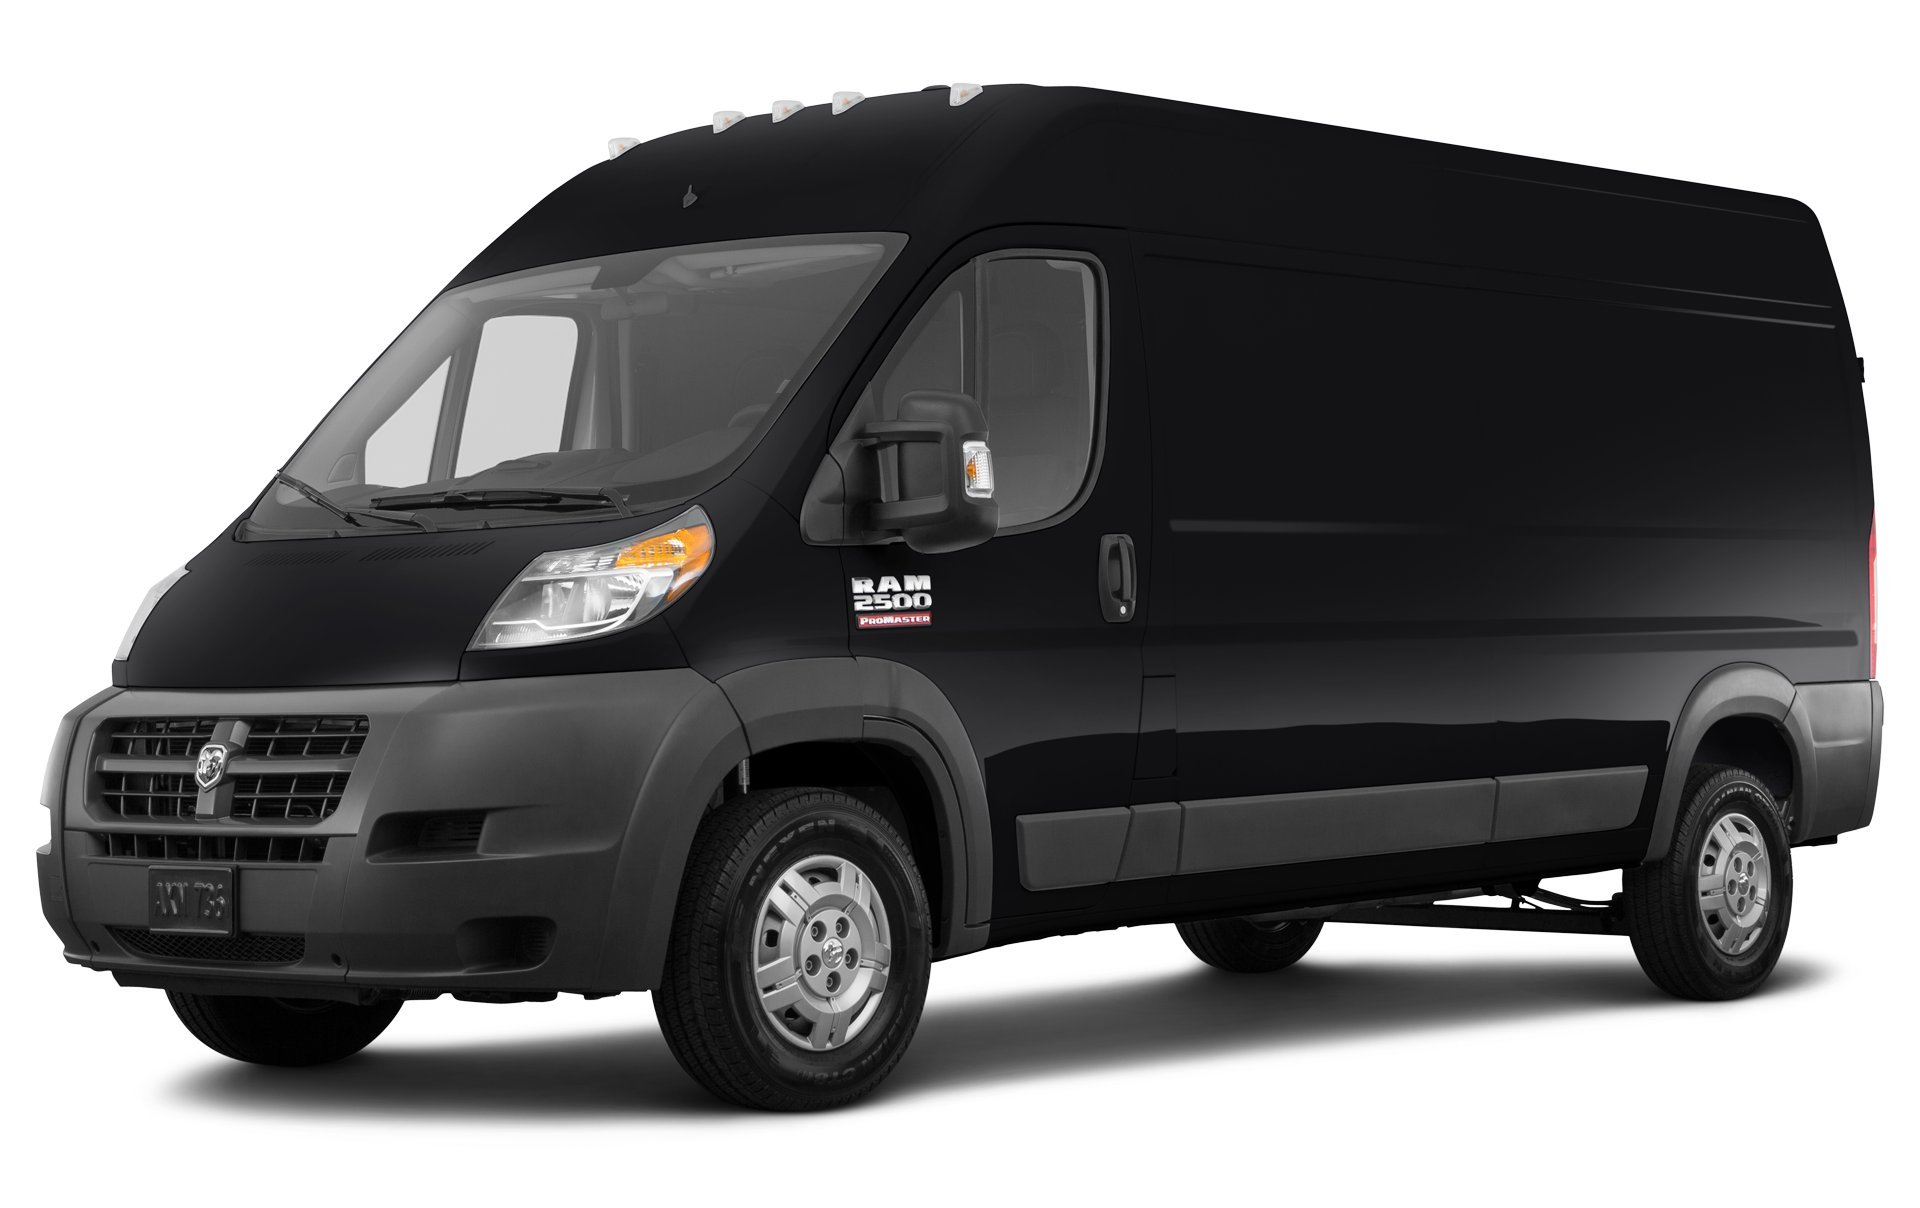 Dodge Ram Promaster >> Amazon Com 2016 Ram Promaster 3500 Reviews Images And Specs Vehicles